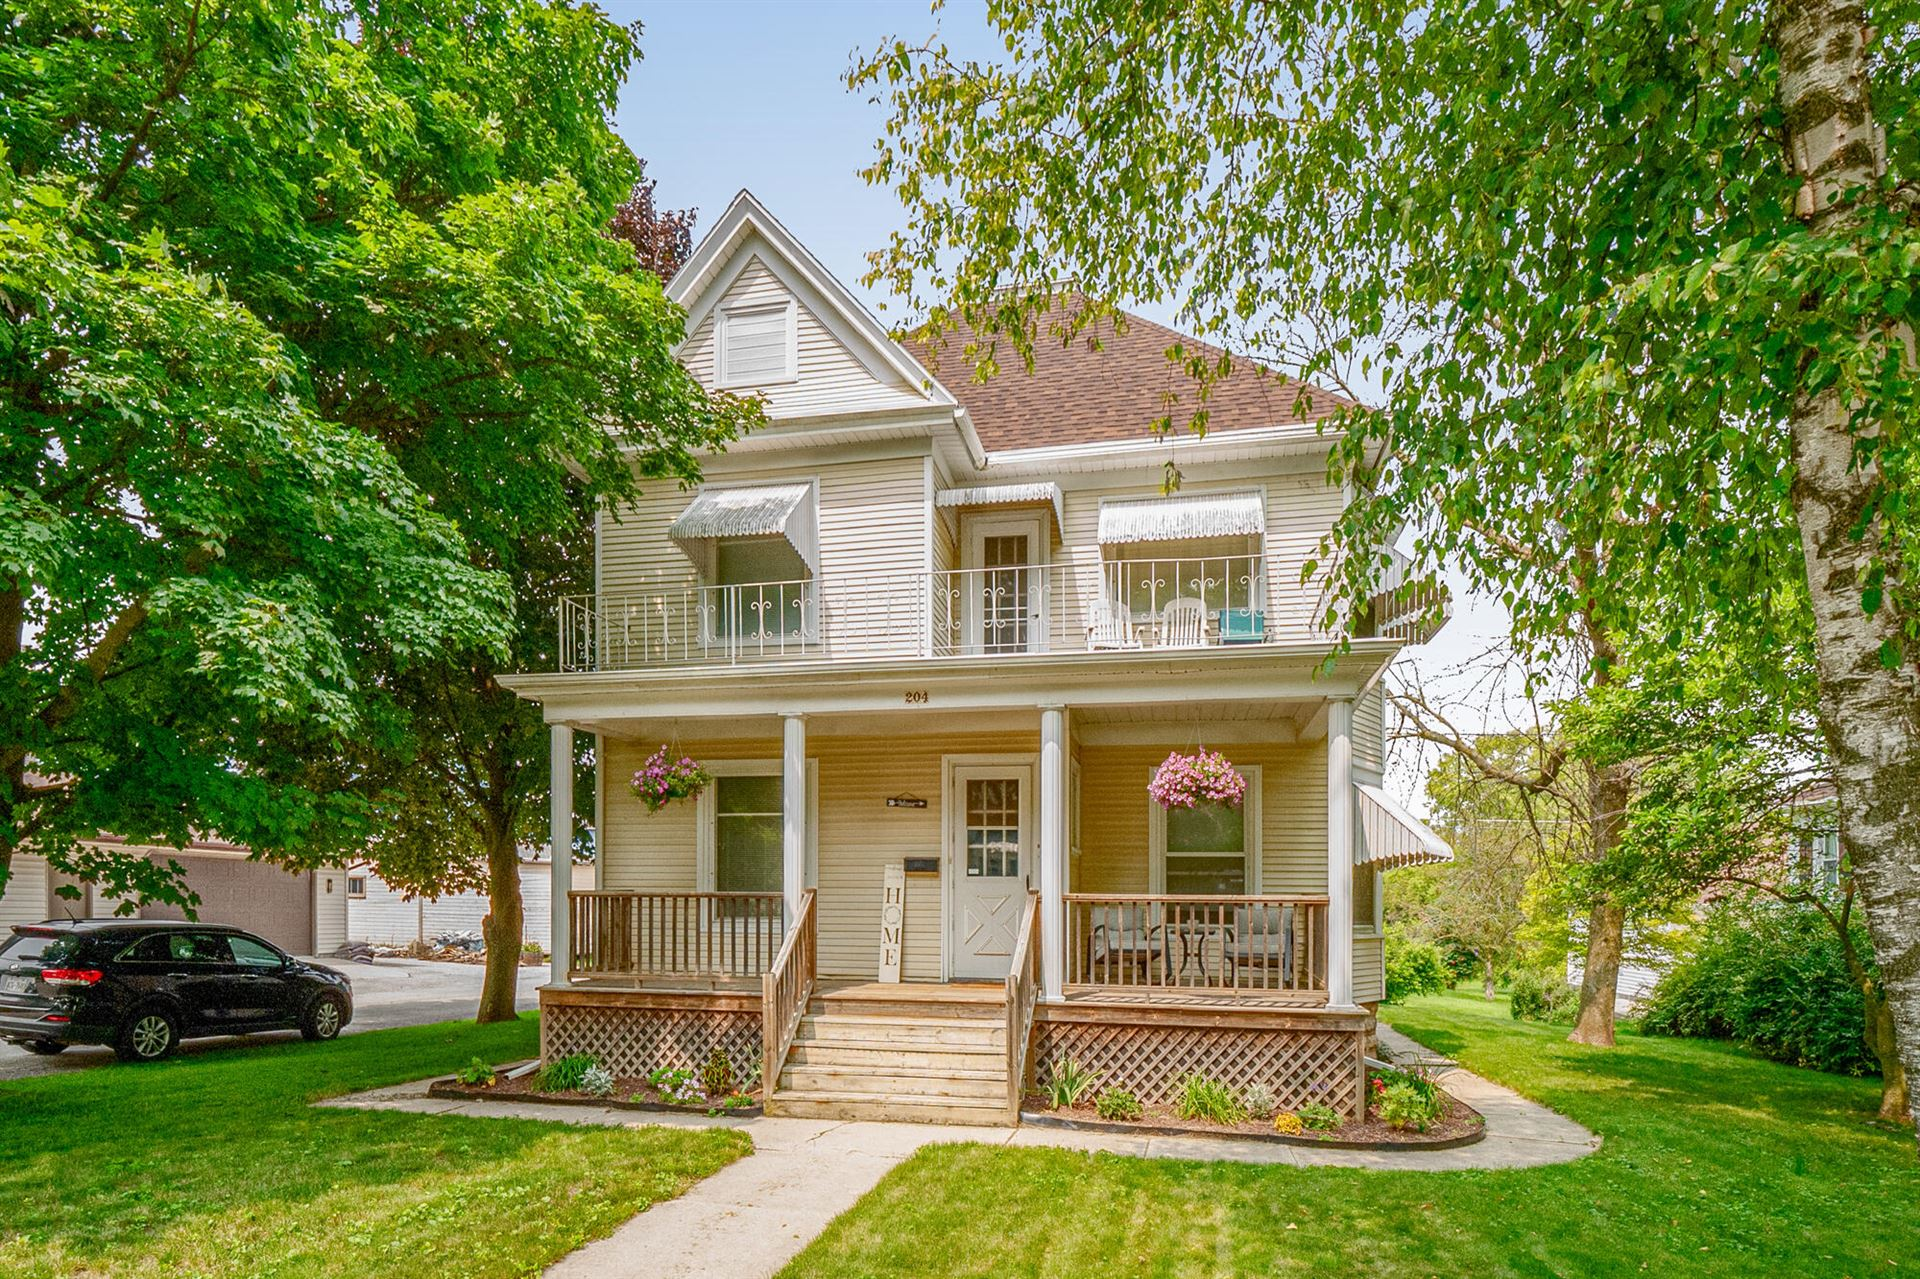 204 Western Ave, Plymouth, WI 53073 - MLS#: 1753575